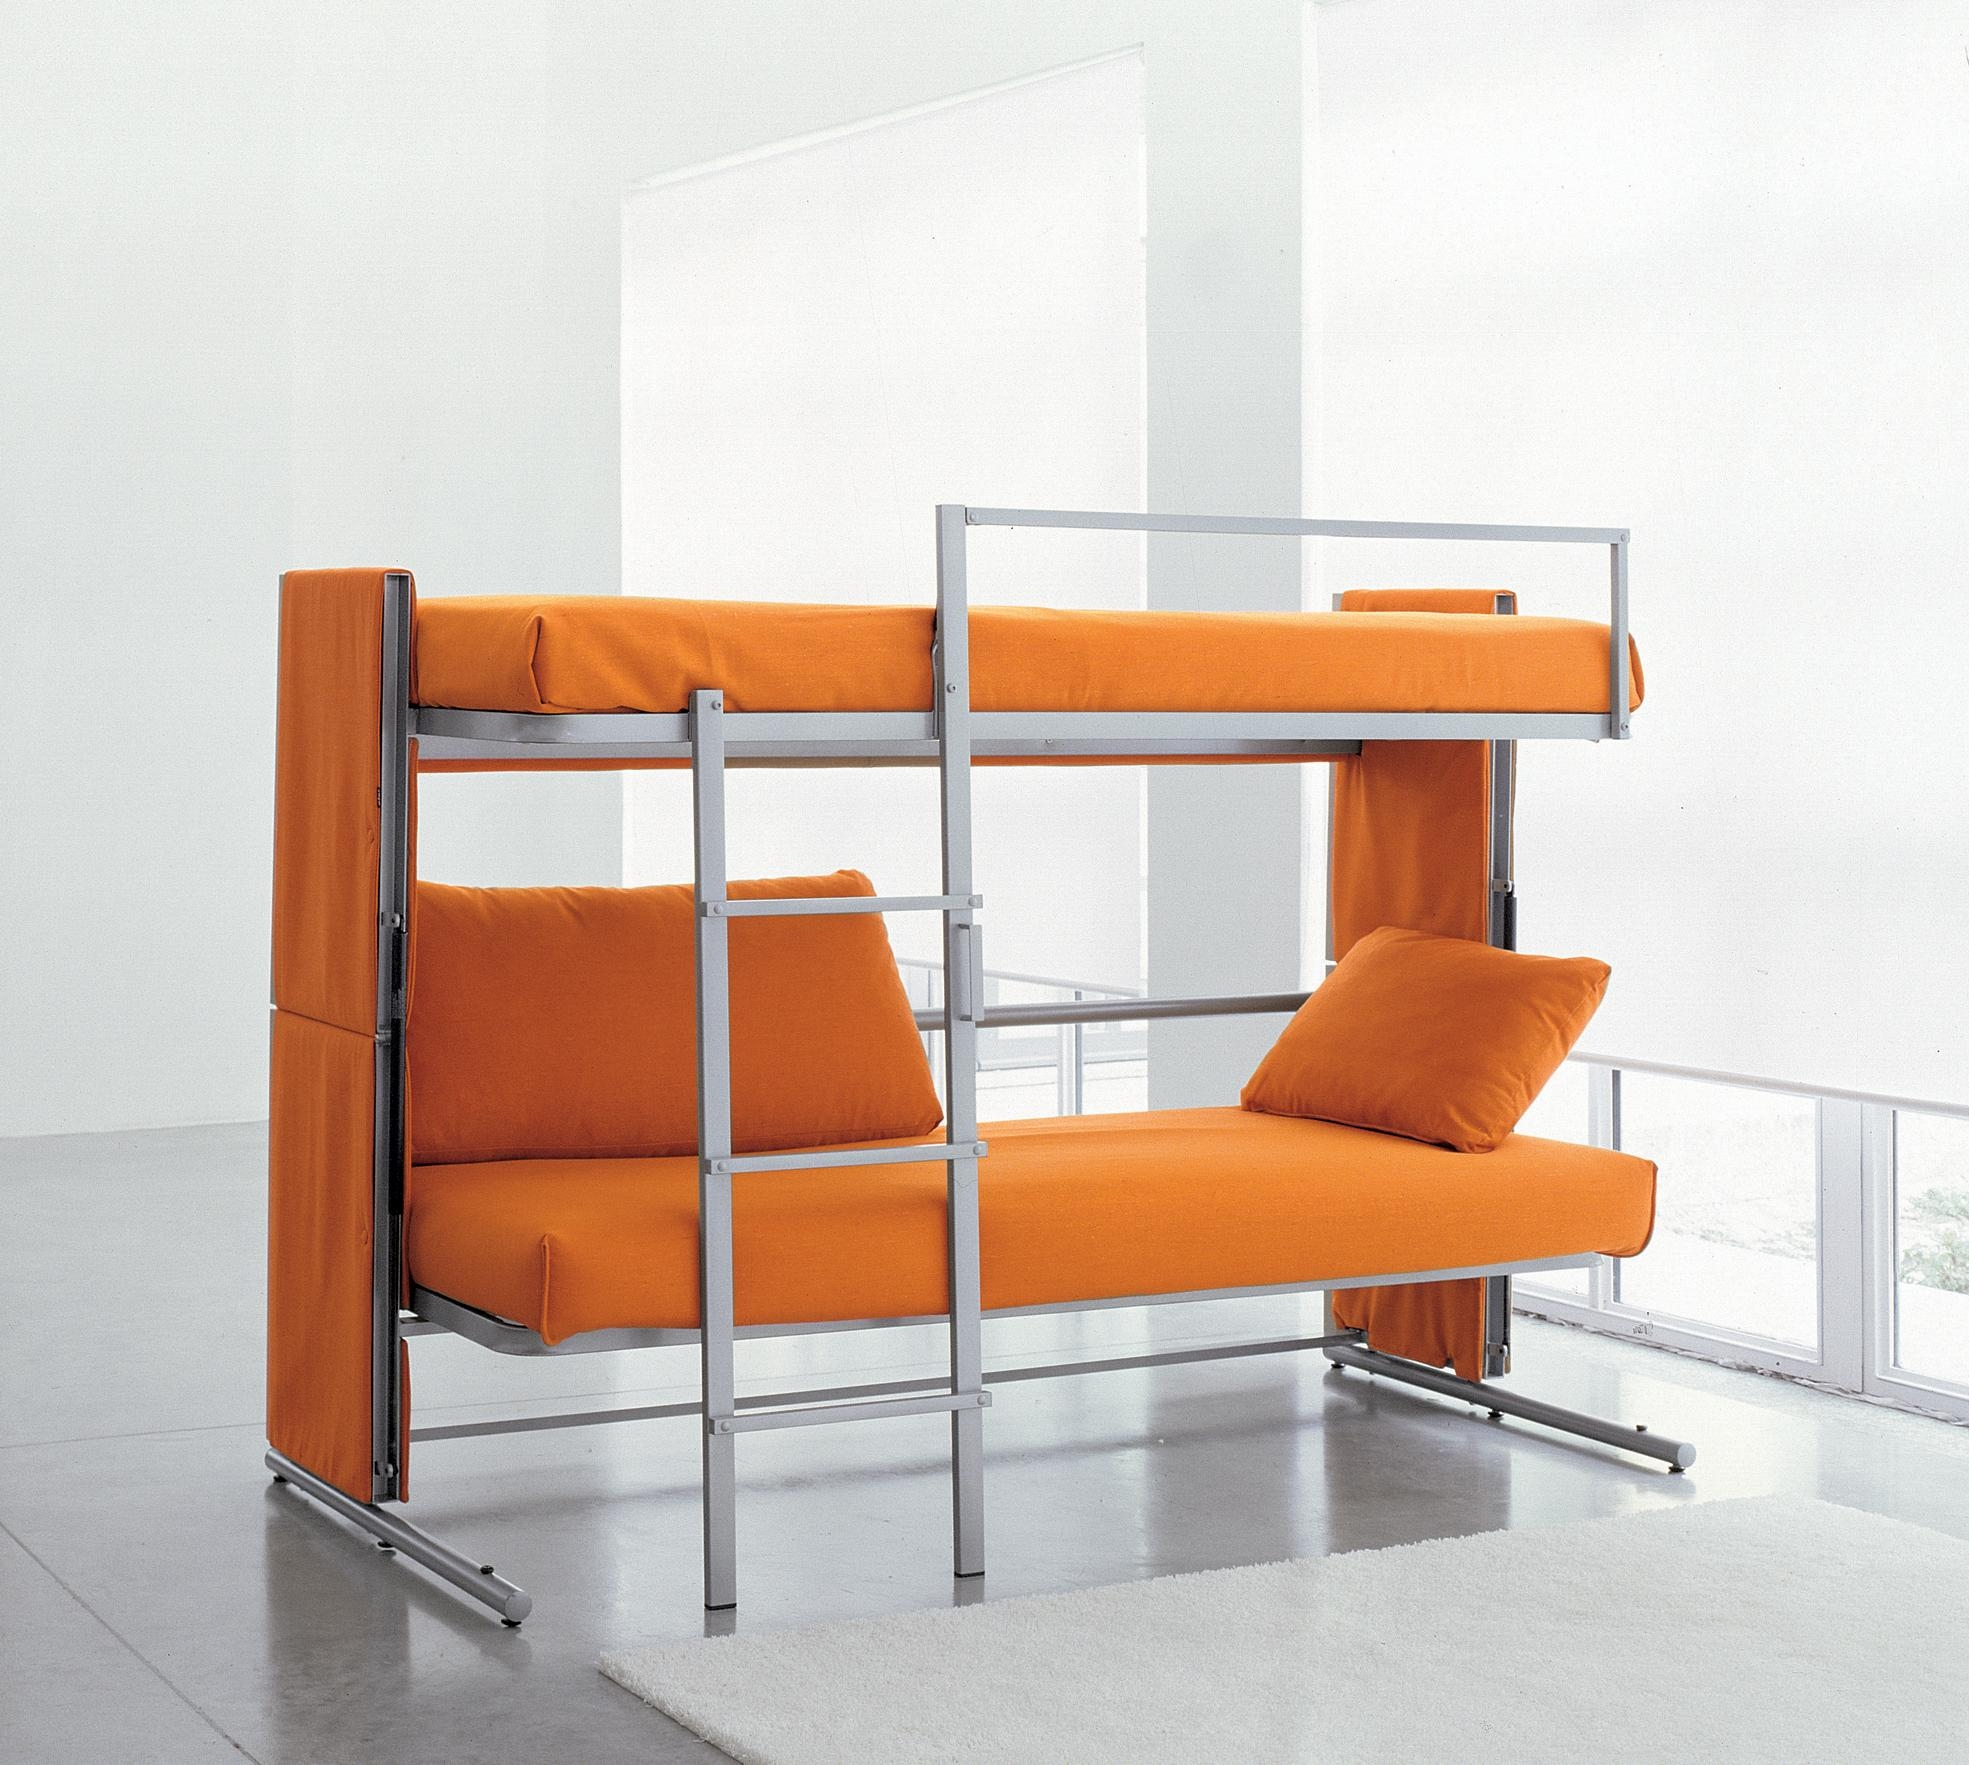 Doc A Sofa Bed That Converts In To A Bunk Bed In Two Secounds With Regard To Sofas Converts To Bunk Bed (Image 12 of 20)